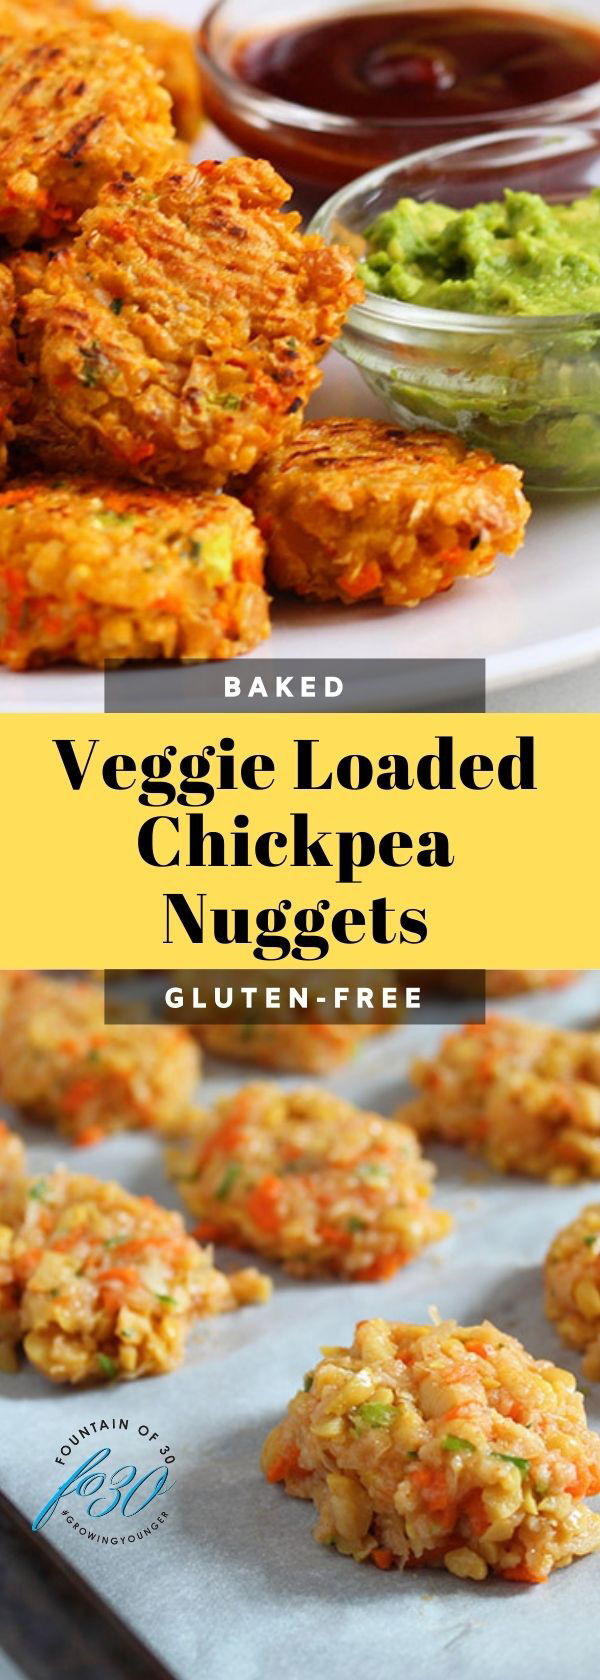 baked chickpea nuggets fountainof30